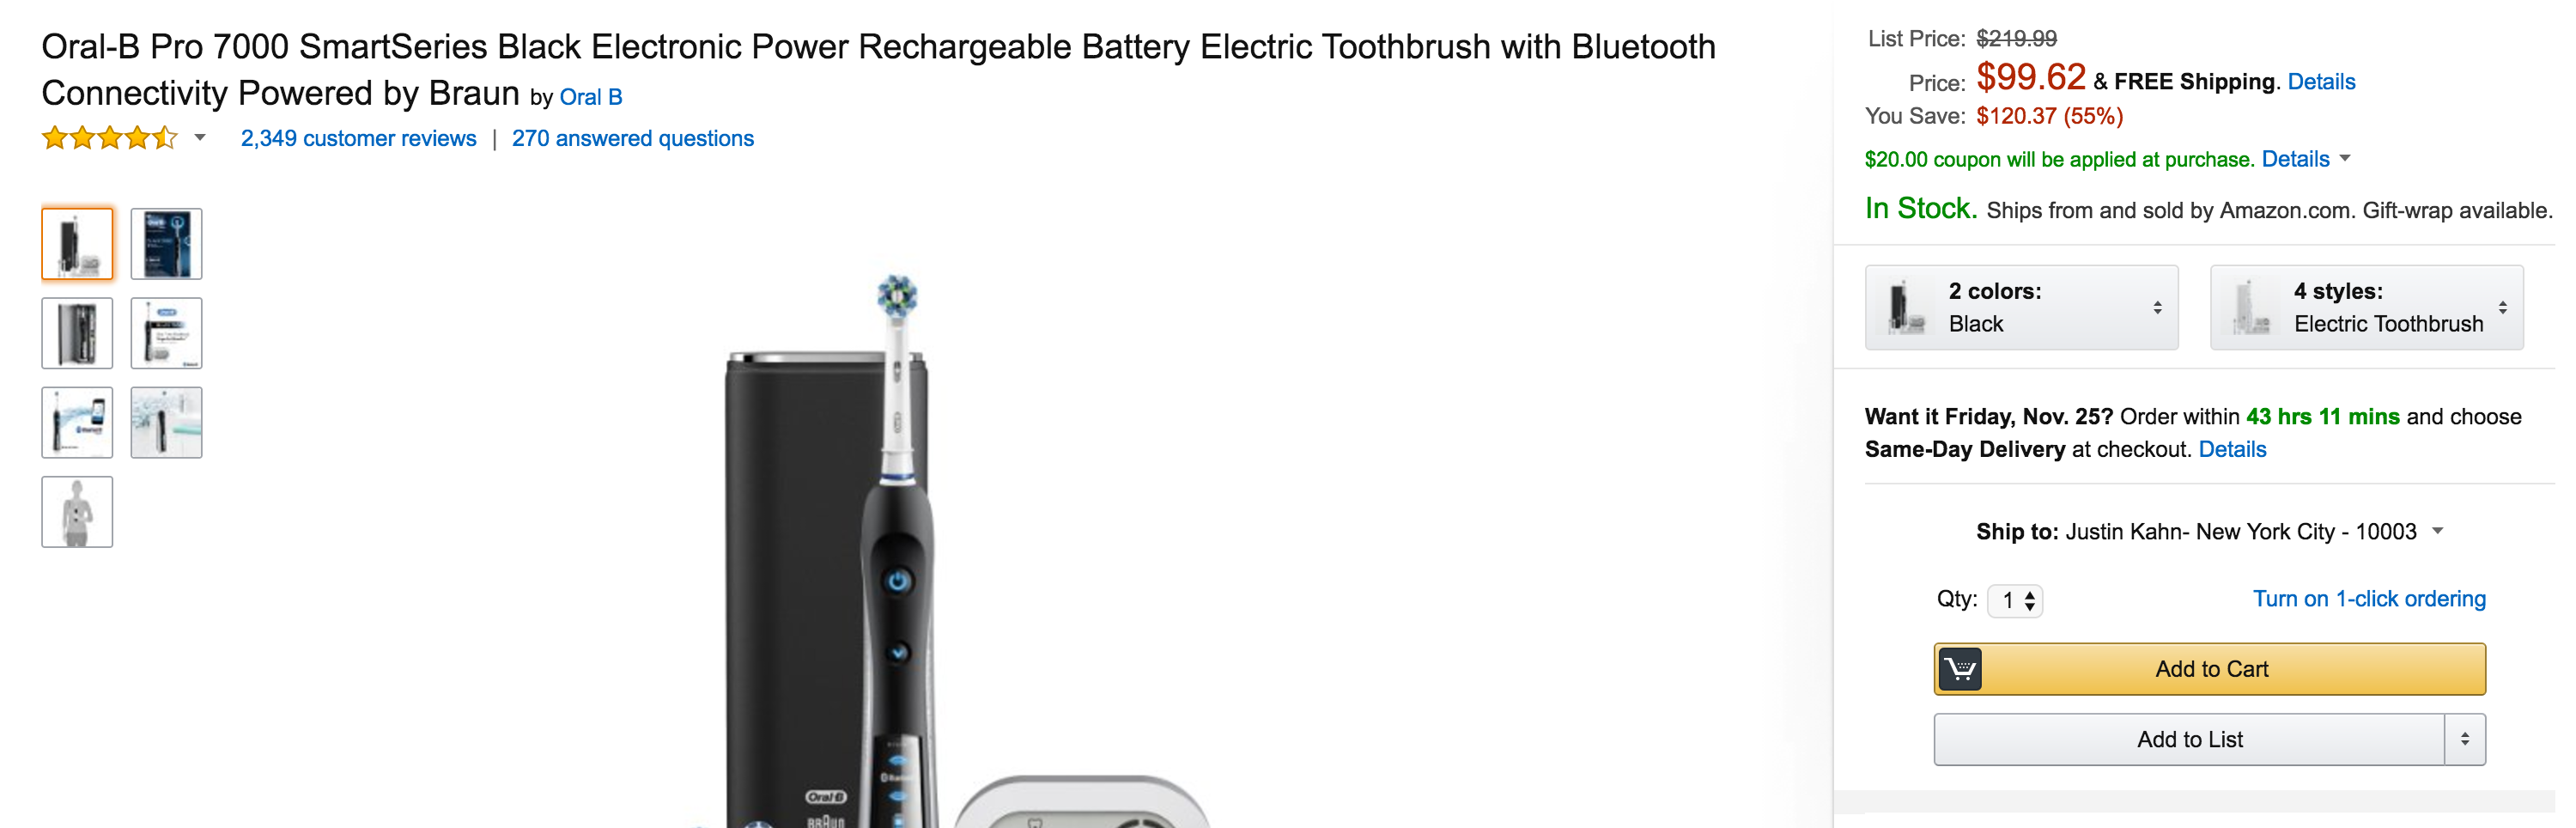 oral-b-black-7000-smartseries-electric-rechargeable-toothbrush-2